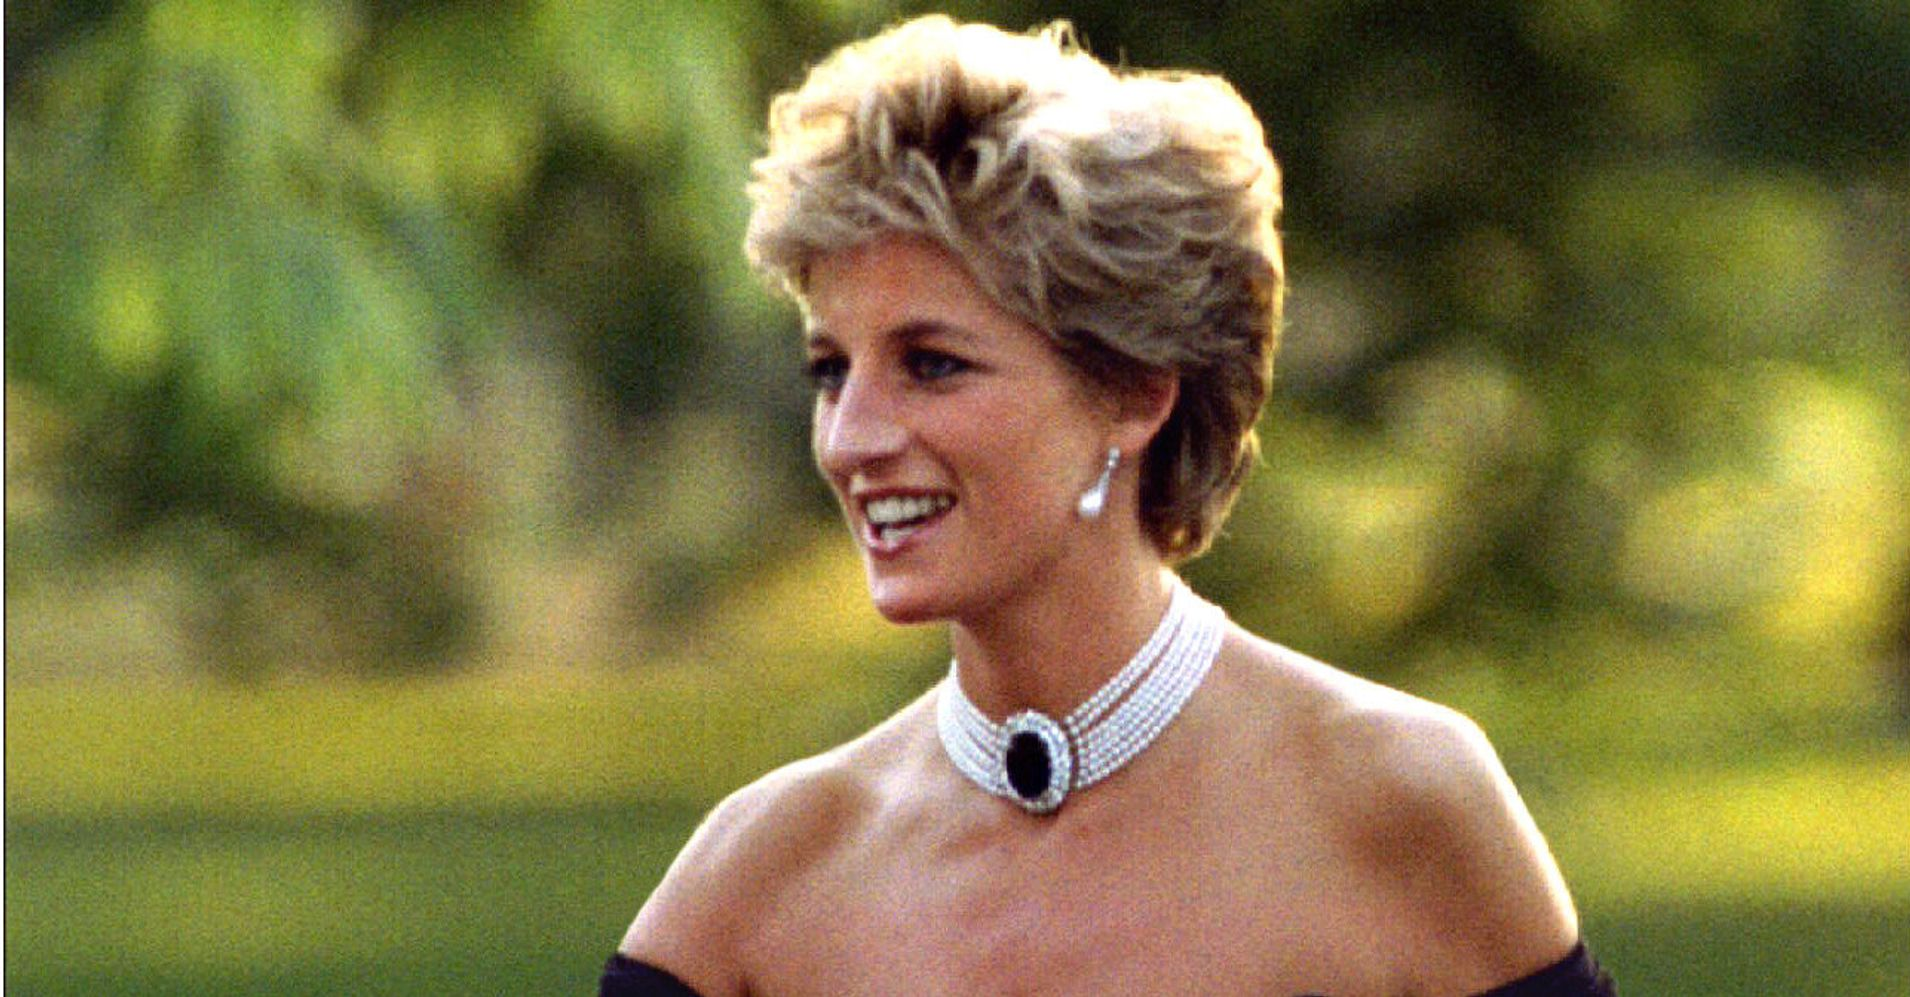 310fe2fb781a9e The Day Princess Diana And Her 'Revenge Dress' Shocked The World | HuffPost  Life